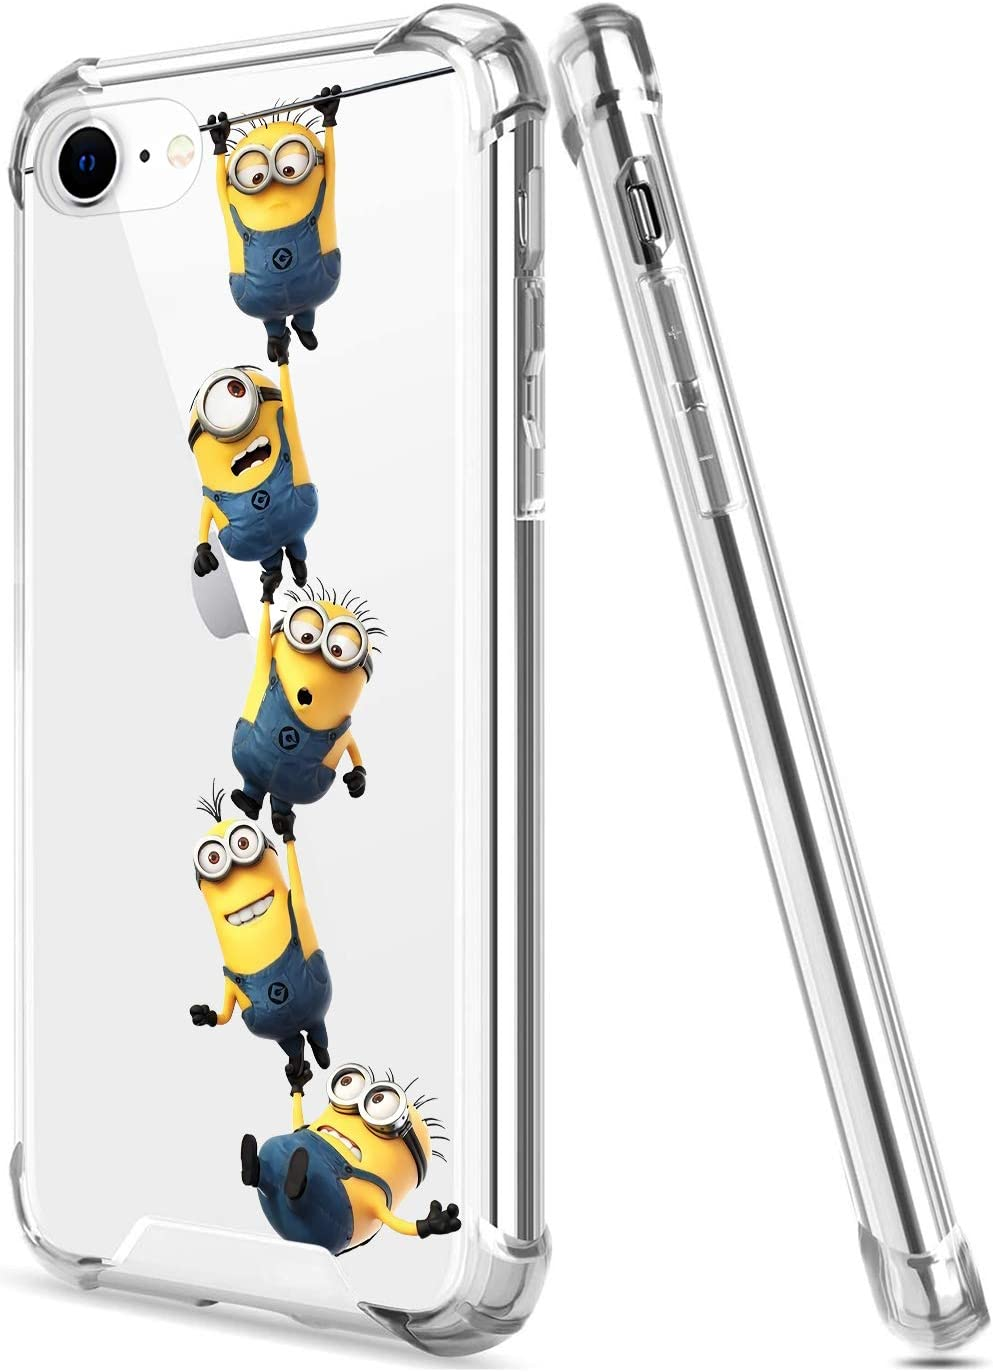 Crystal Clear iPhone 7/8/SE 2020 Case with 4 Corners Shockproof Protection,Cute Cartoon Design Soft TPU Bumper and Anti-Scratch PC Back Cover Cases for Men and Women (Yellow-Lovely-Minions)